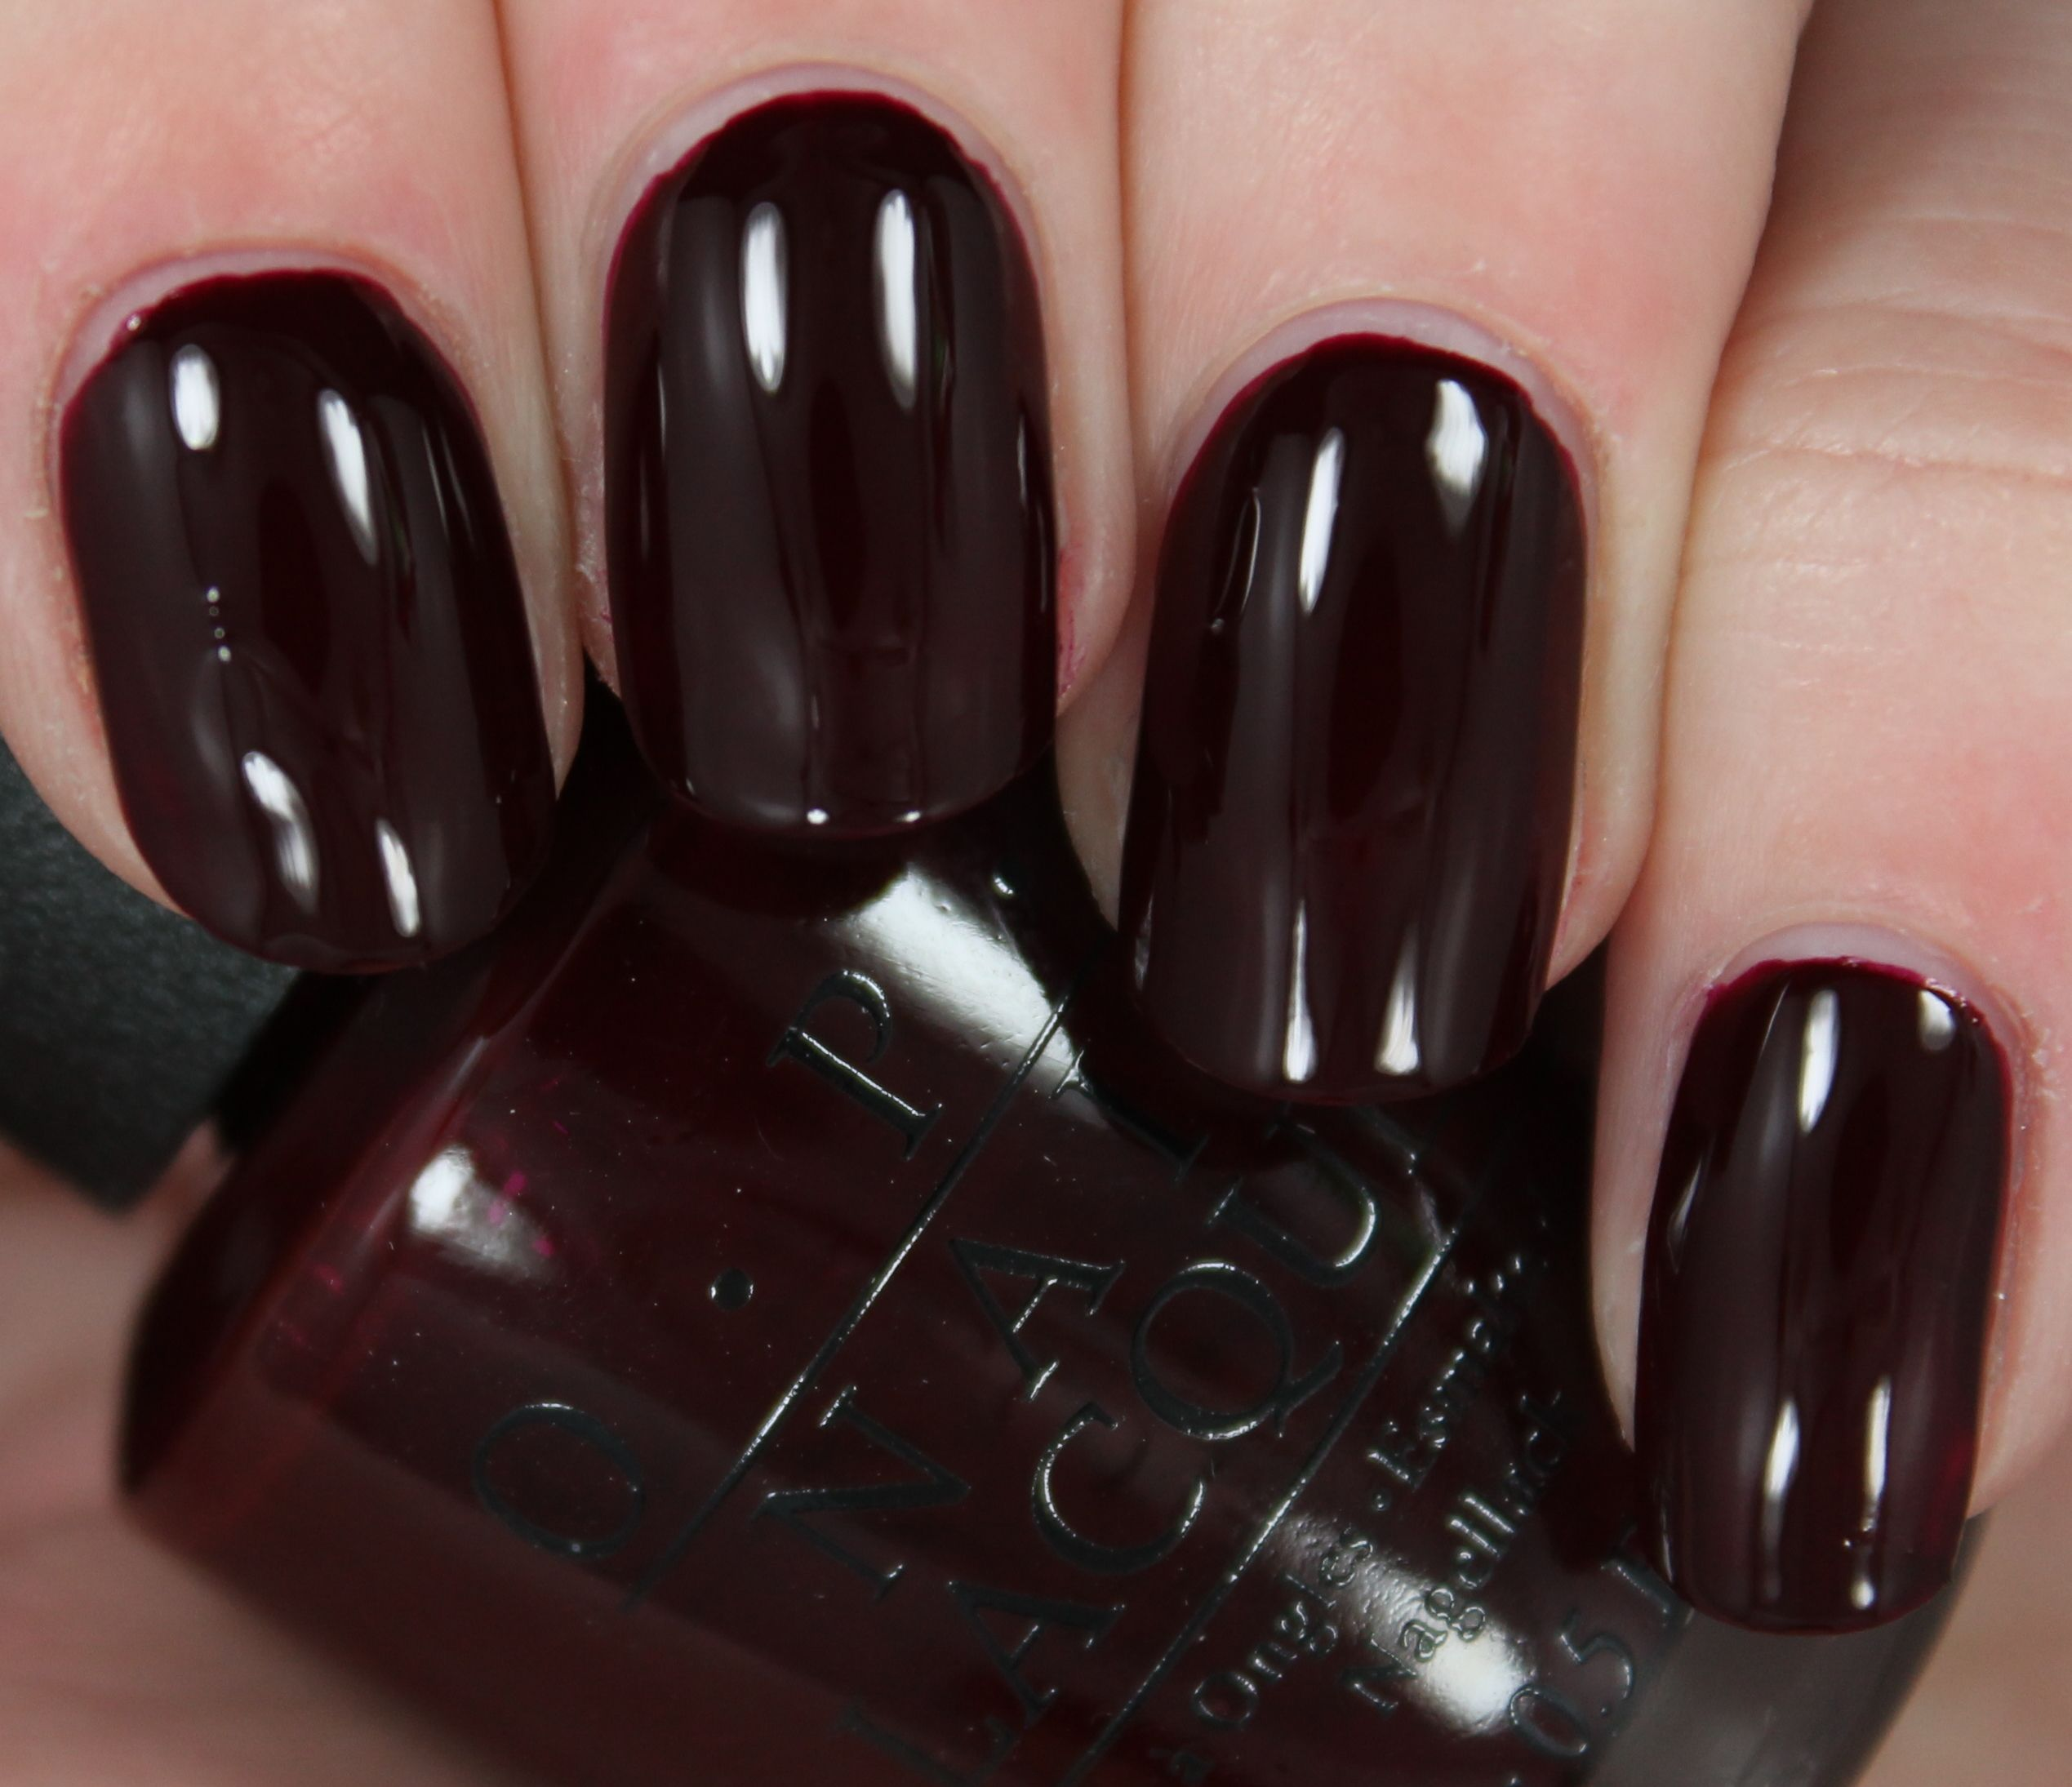 Black Nail Polish Colors: Love This Color!! Wish I Knew The Name Of It.